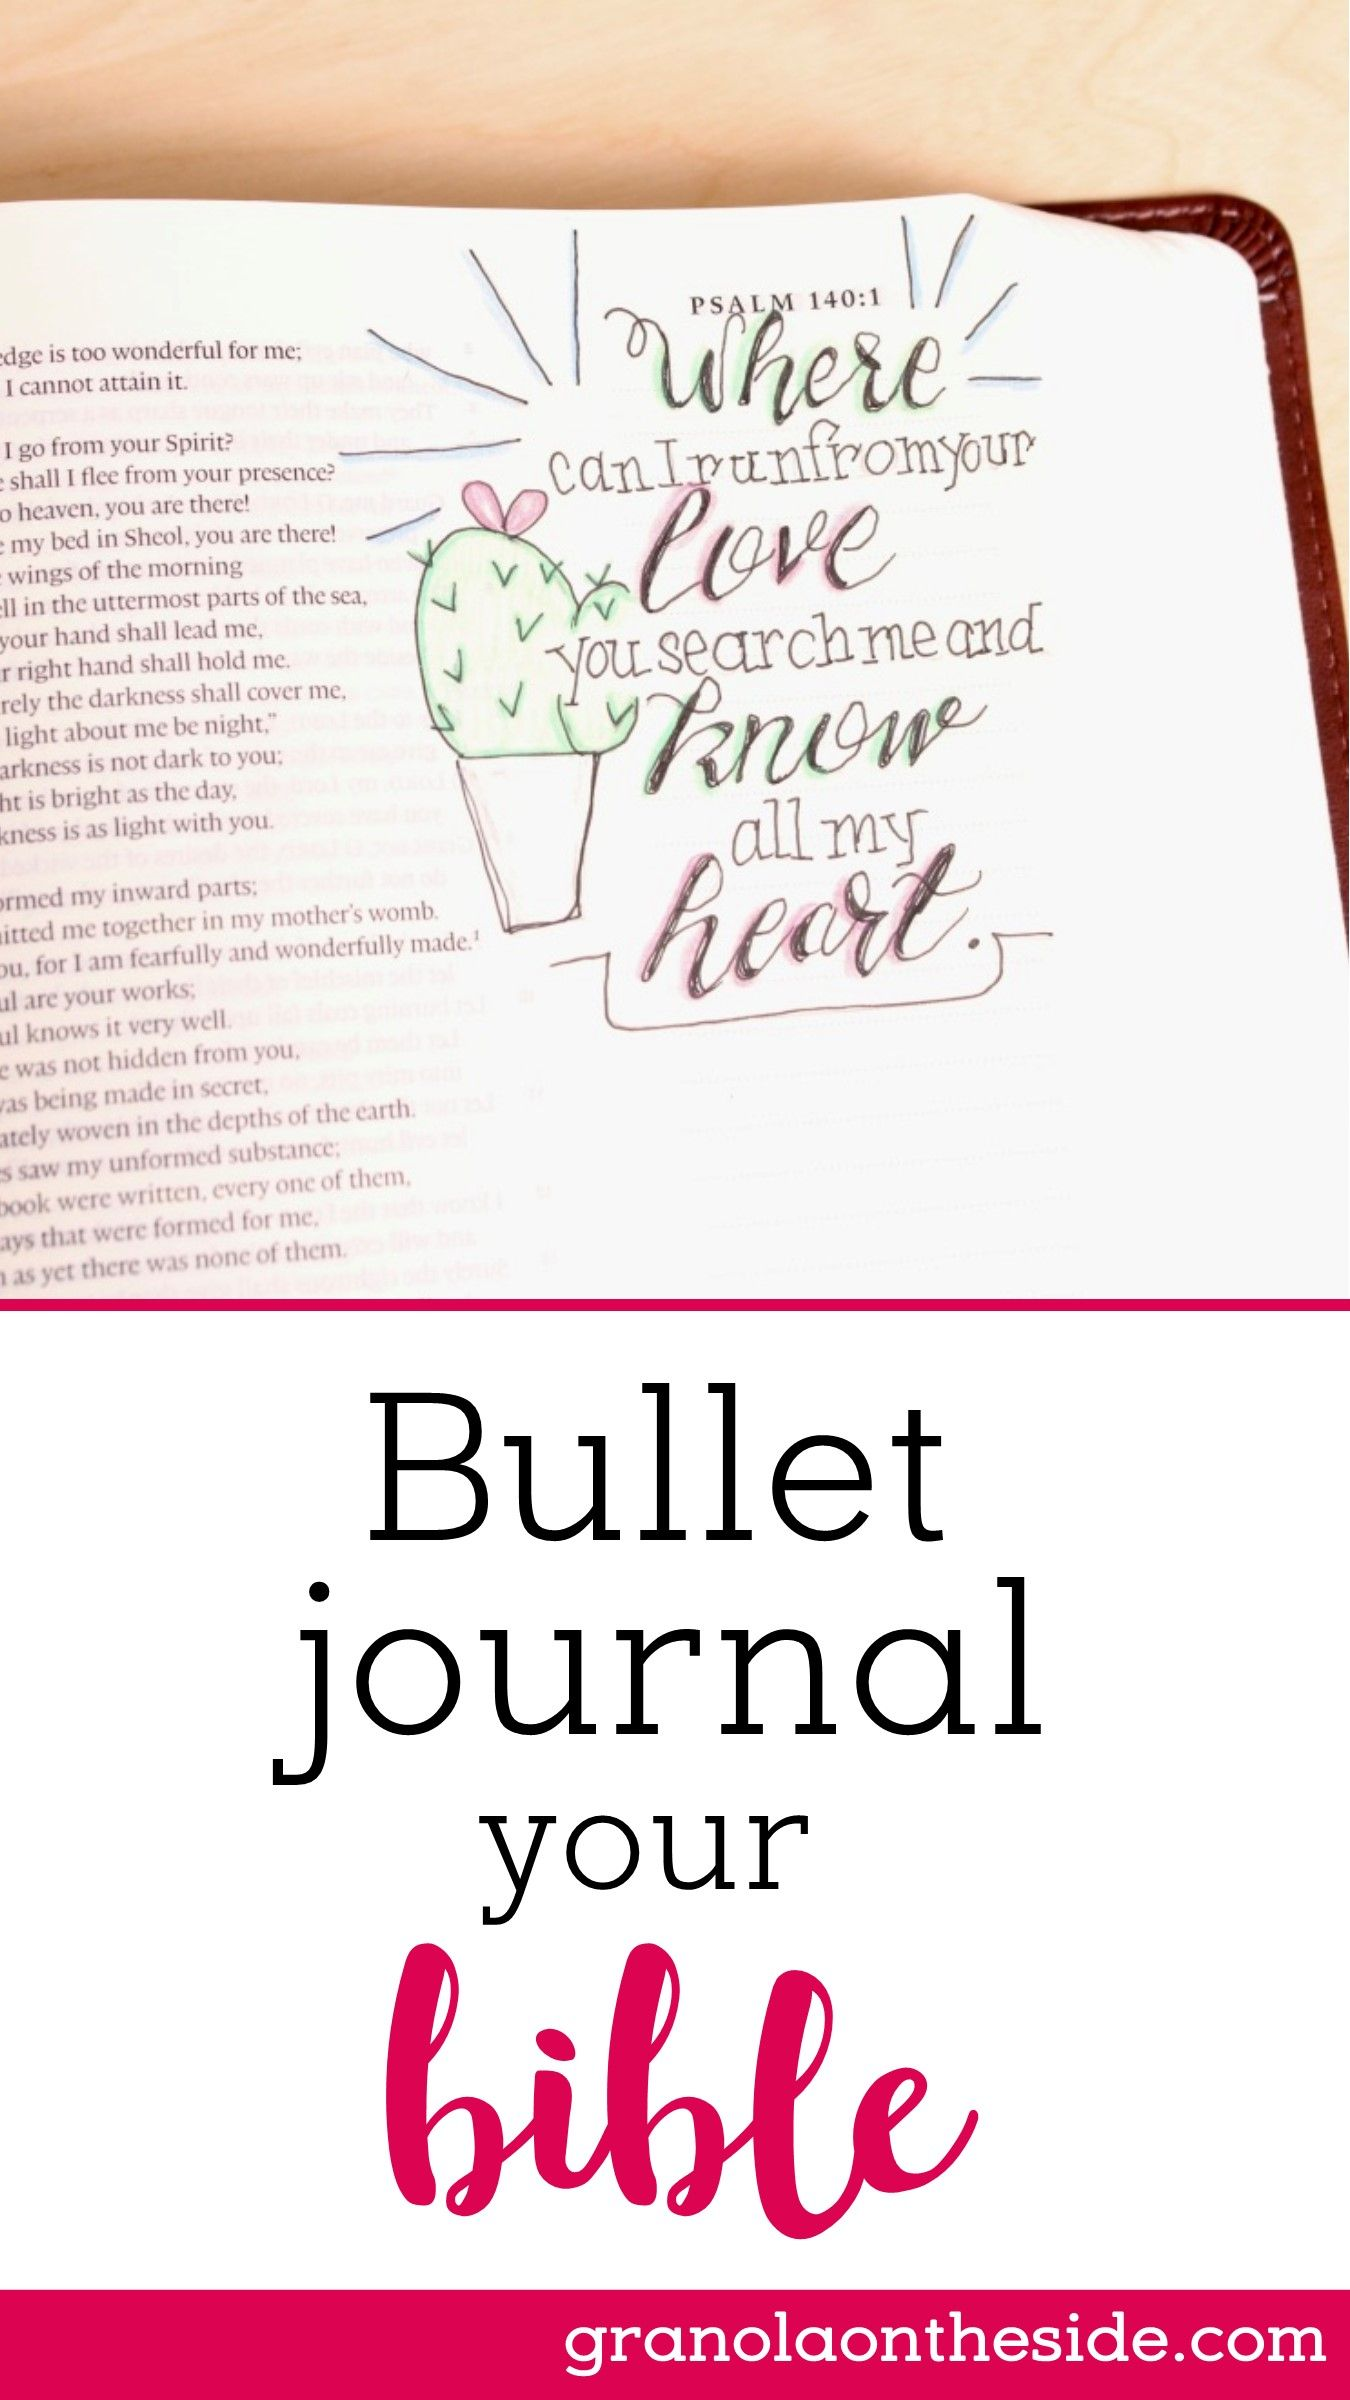 Bullet journal for your bible crayons on the wall making a bullet journal for your bible crayons on the wall making a consistent quiet time is made so much easier through the use of bullet journalling strategies fandeluxe Image collections